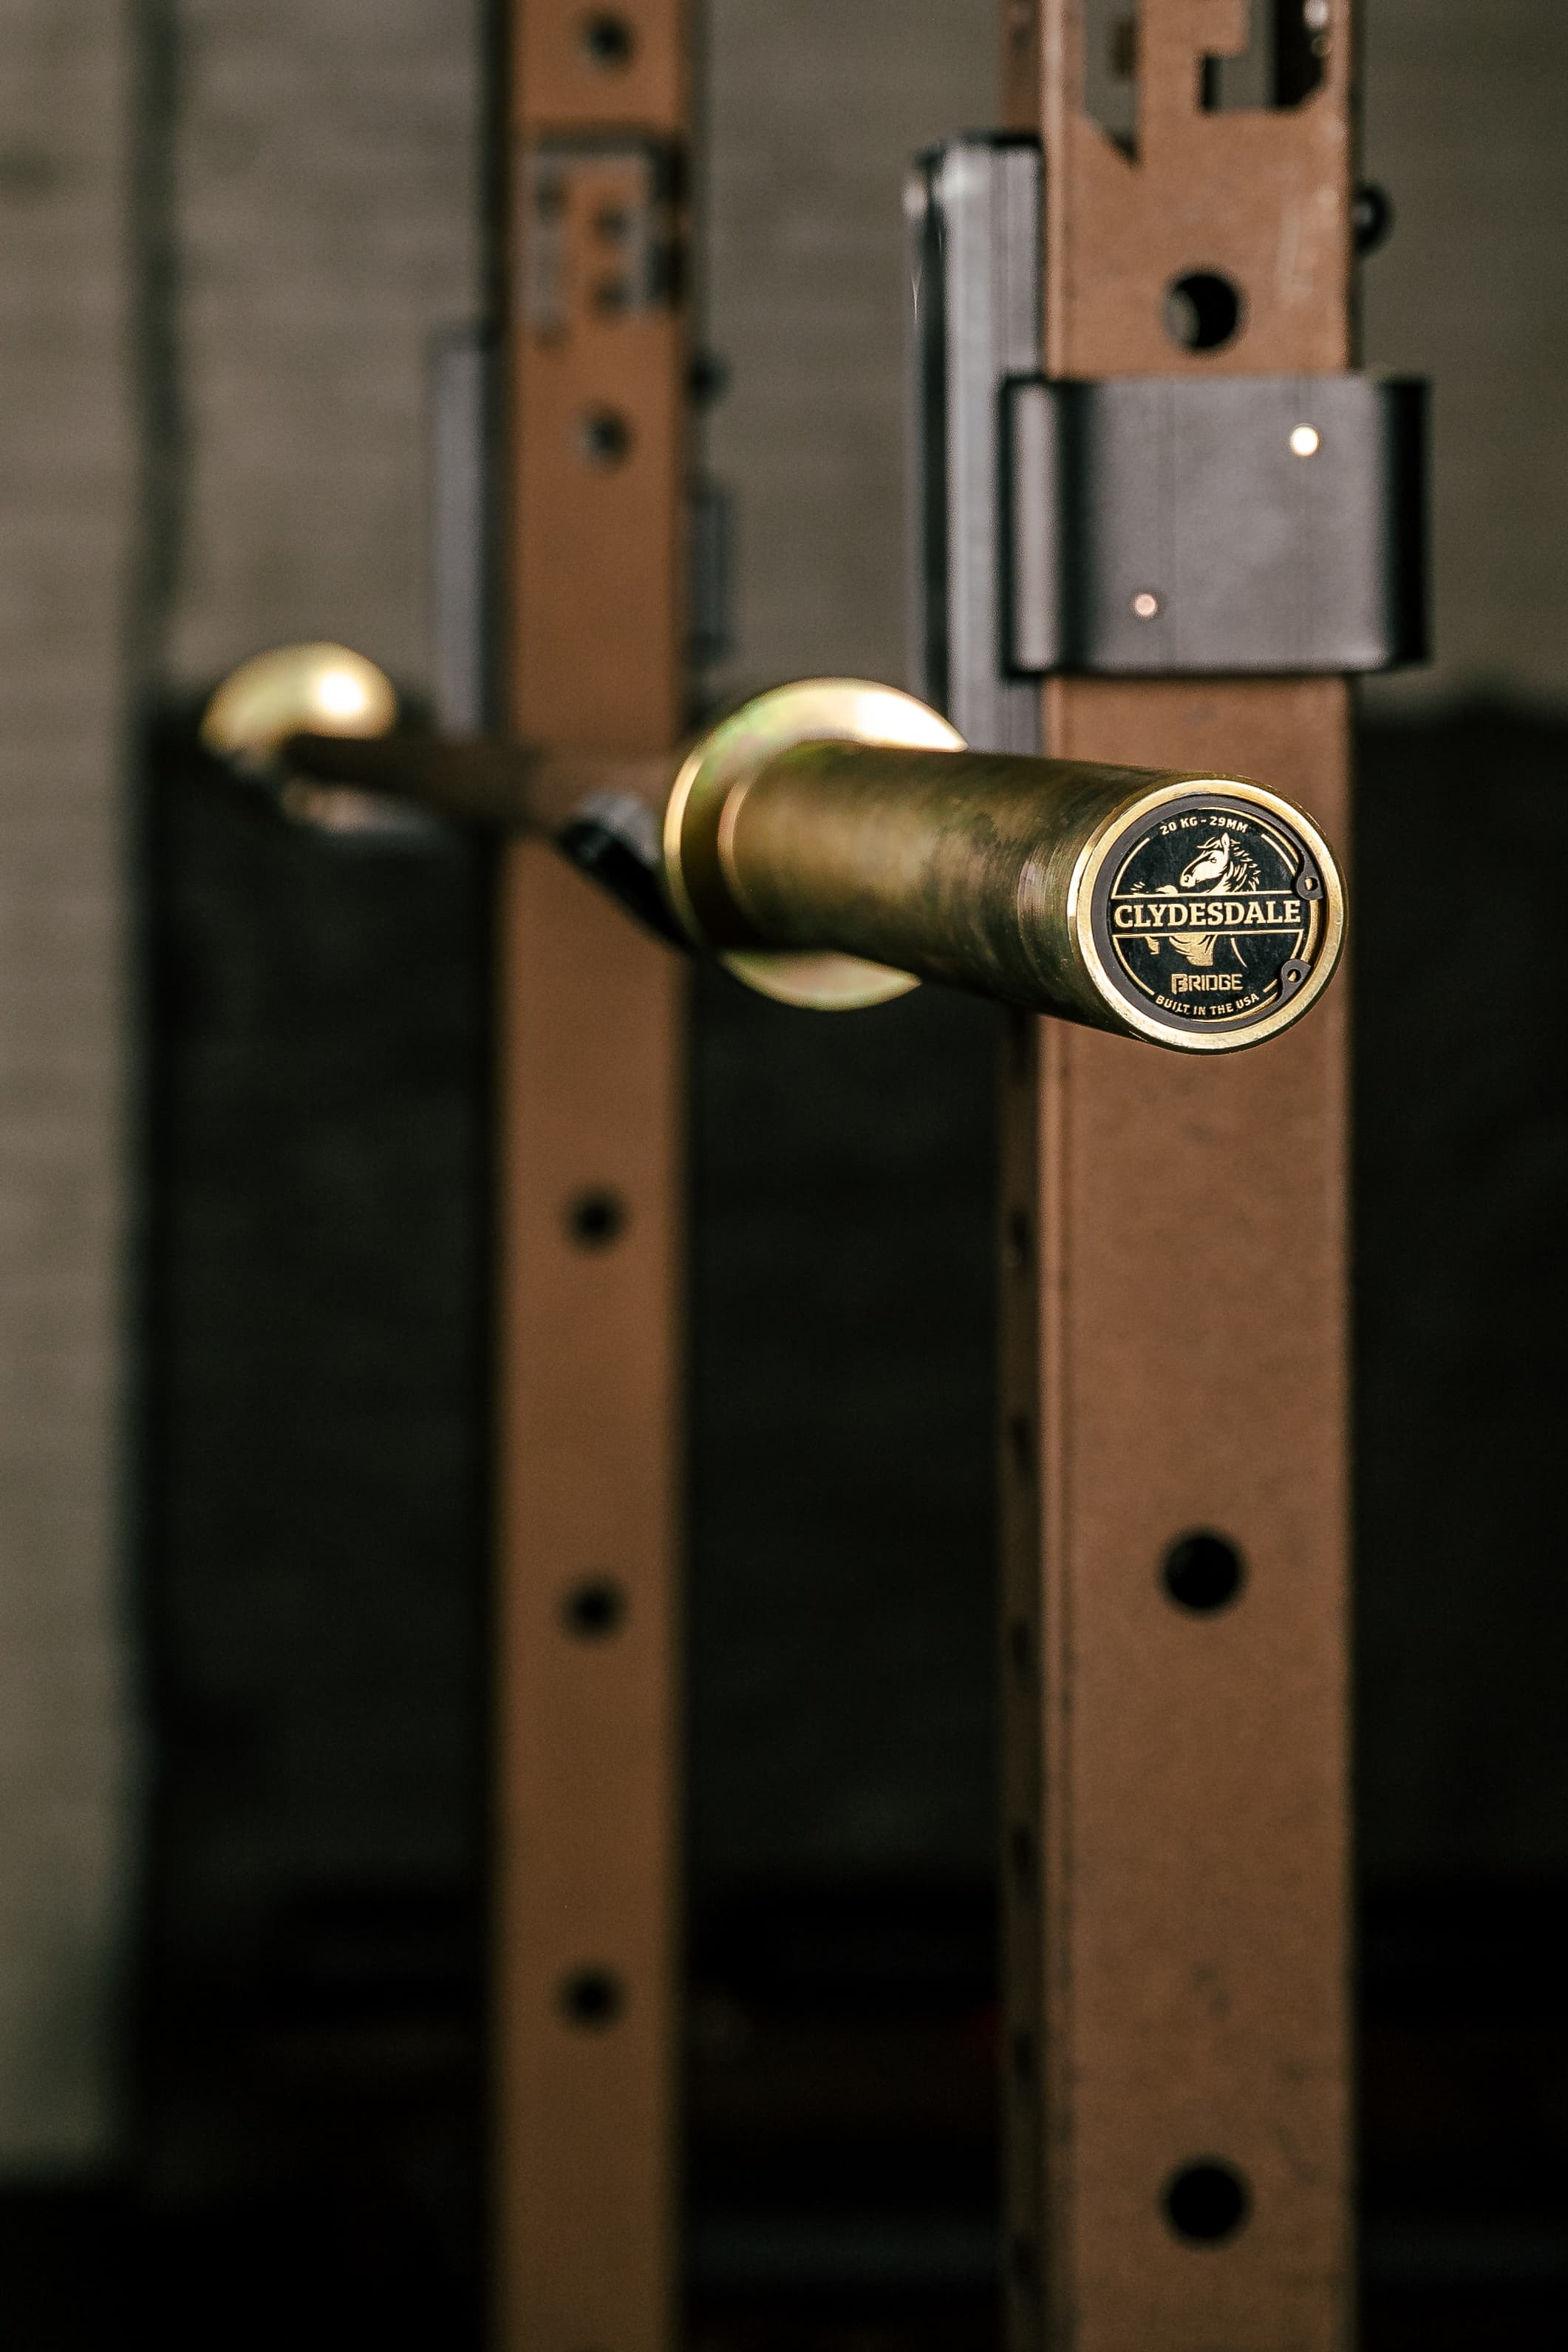 endcap of clydesdale barbell with the clydesdale logo